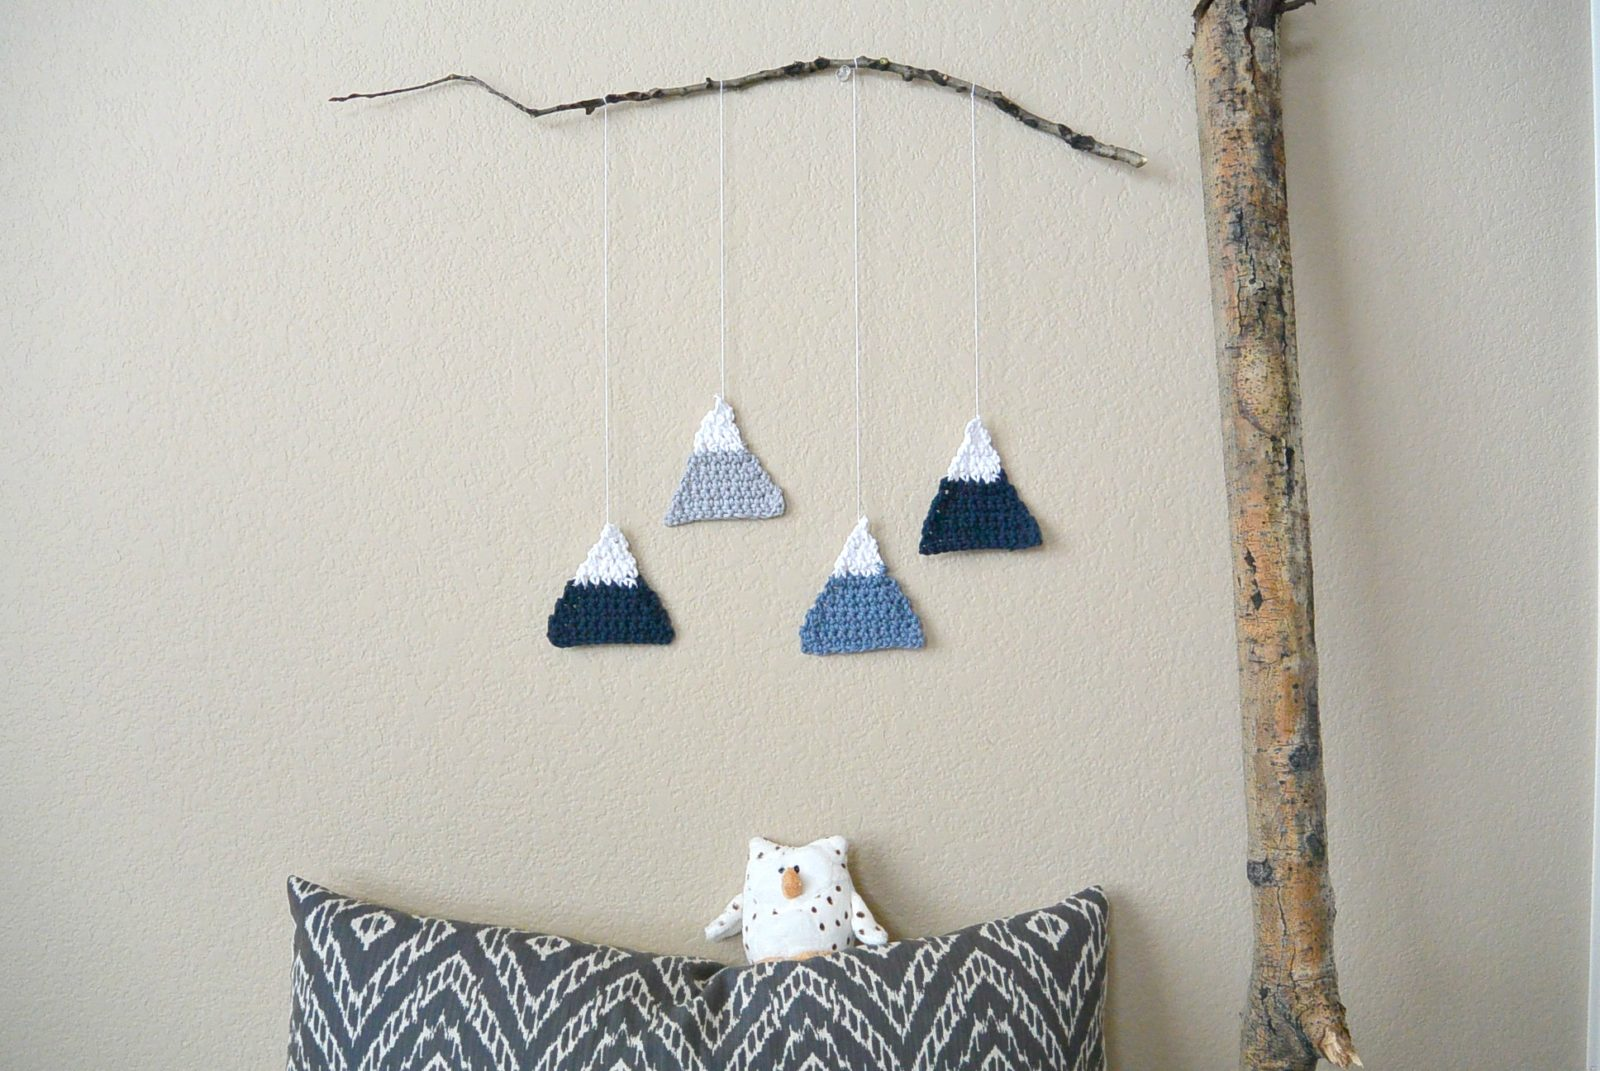 Crochet Mountain Wall Hanging – As Seen In Homespun Magazine